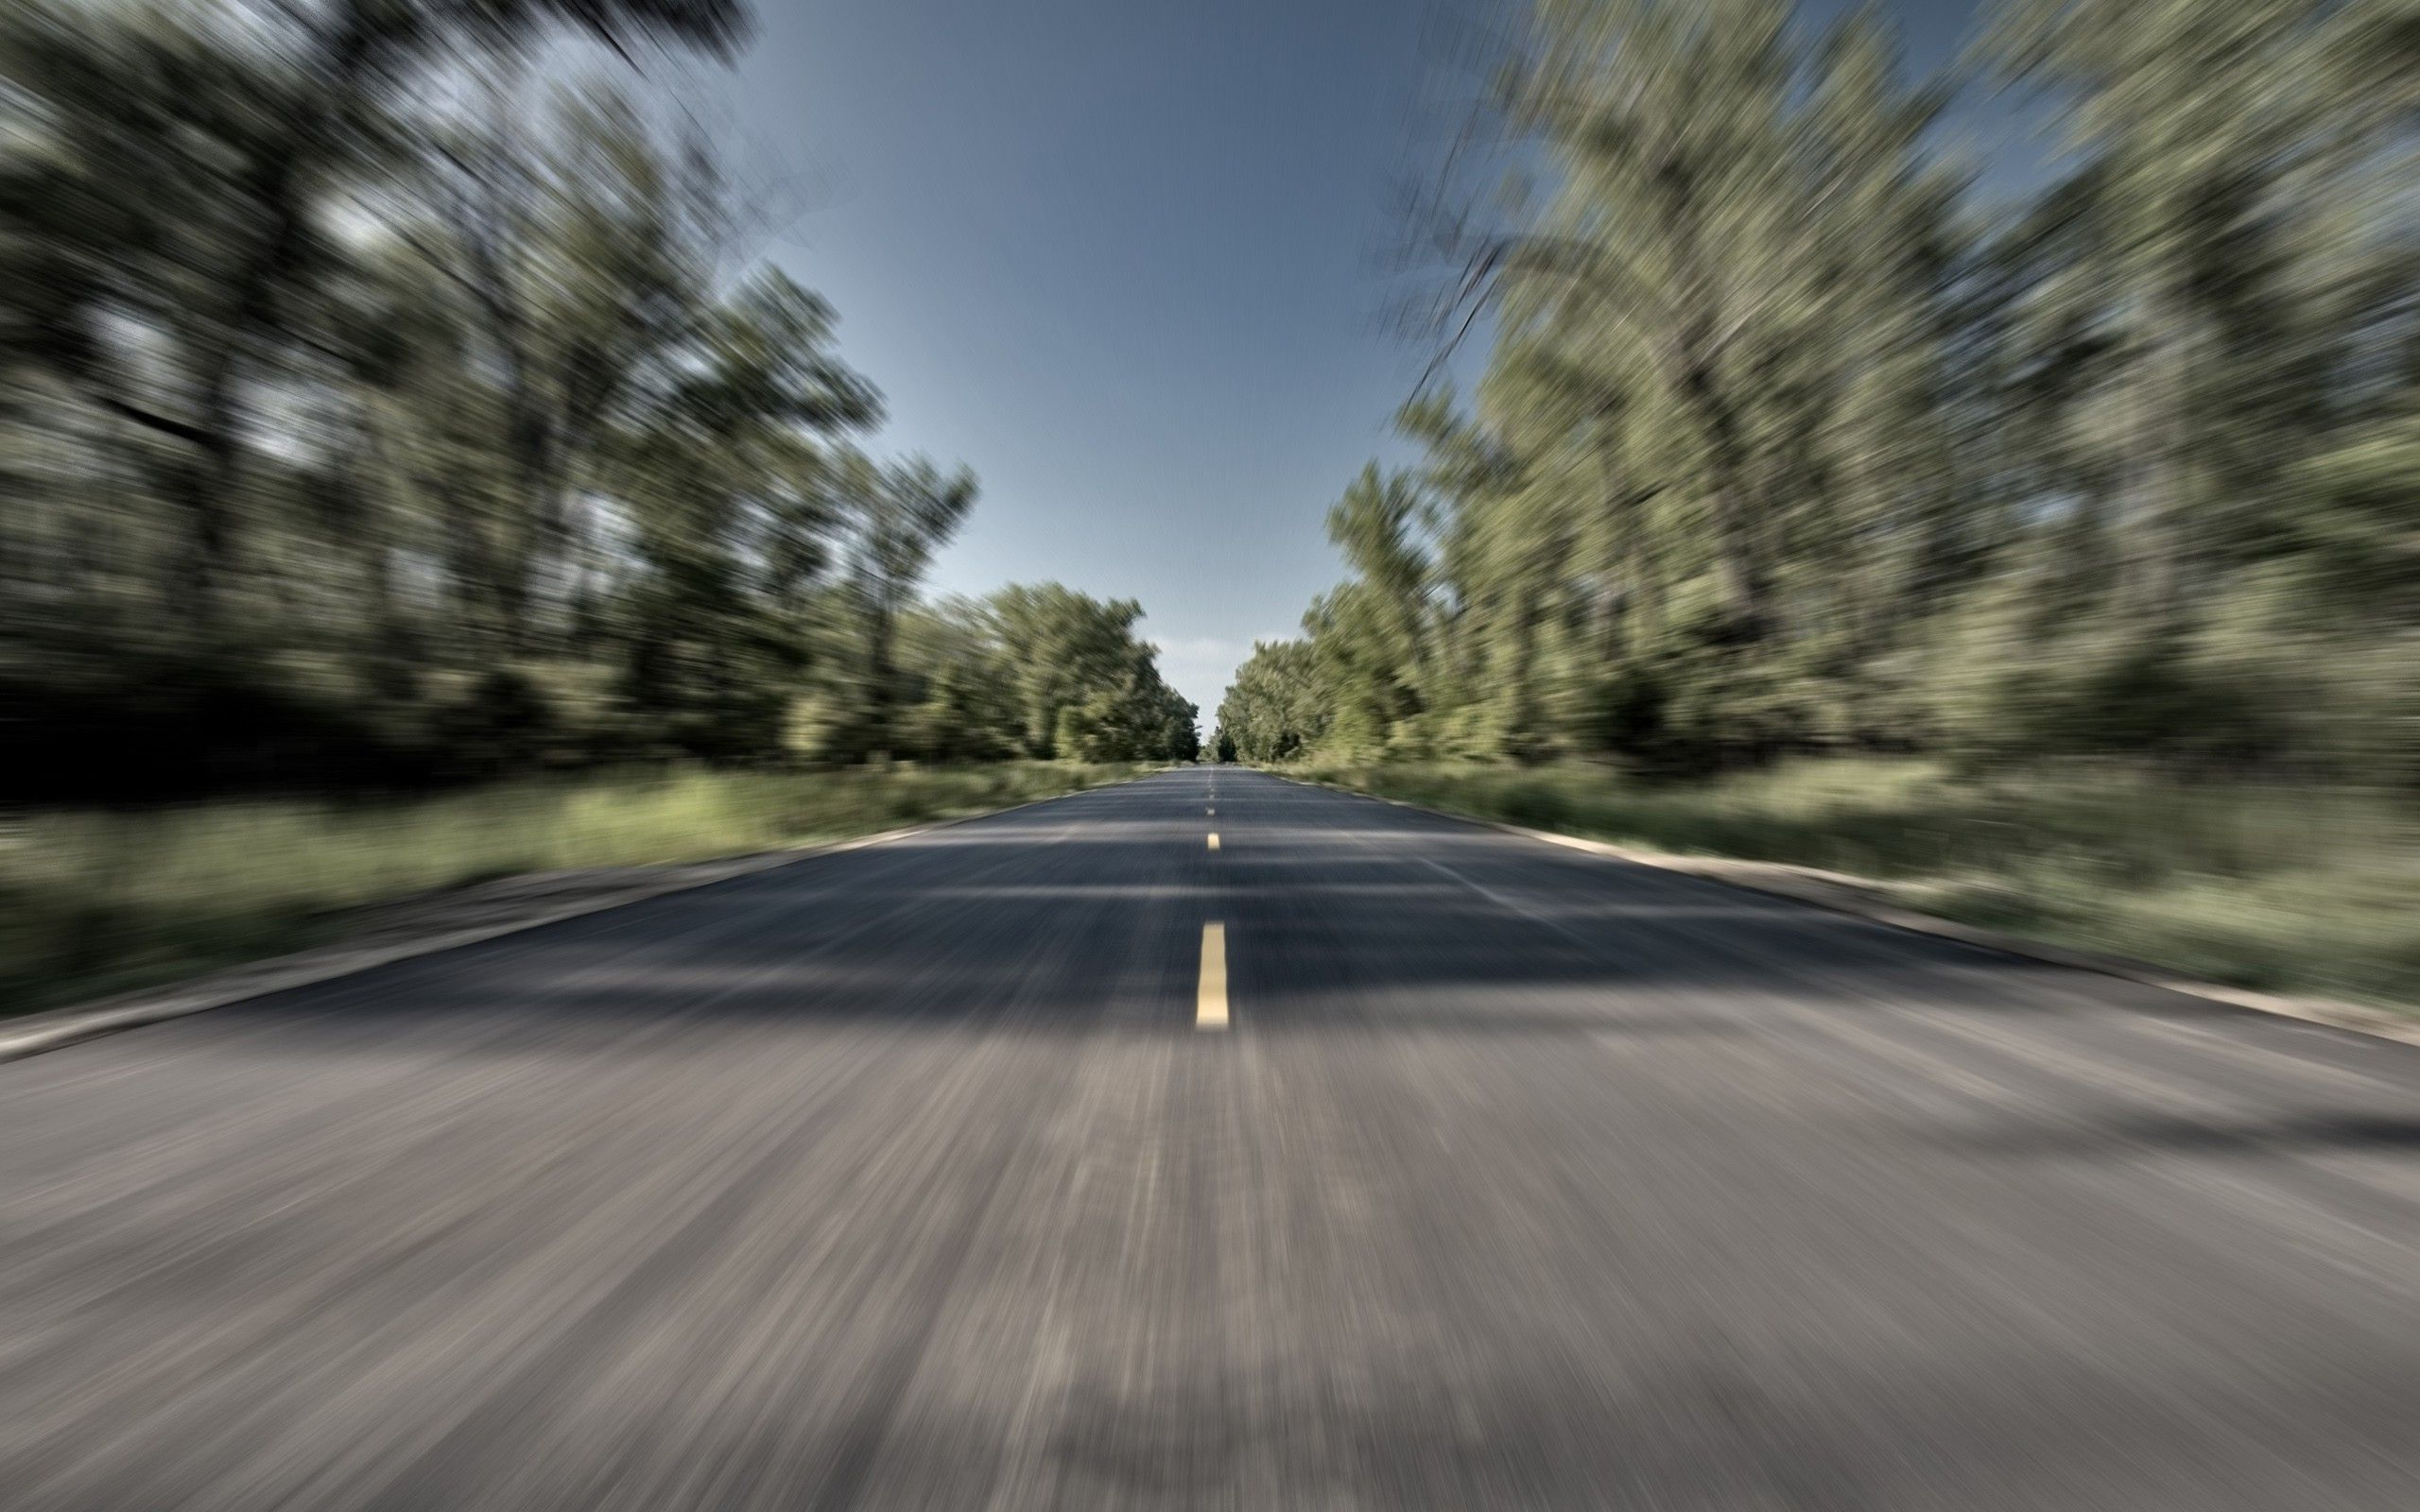 Road Blur Wallpapers Top Free Road Blur Backgrounds Wallpaperaccess